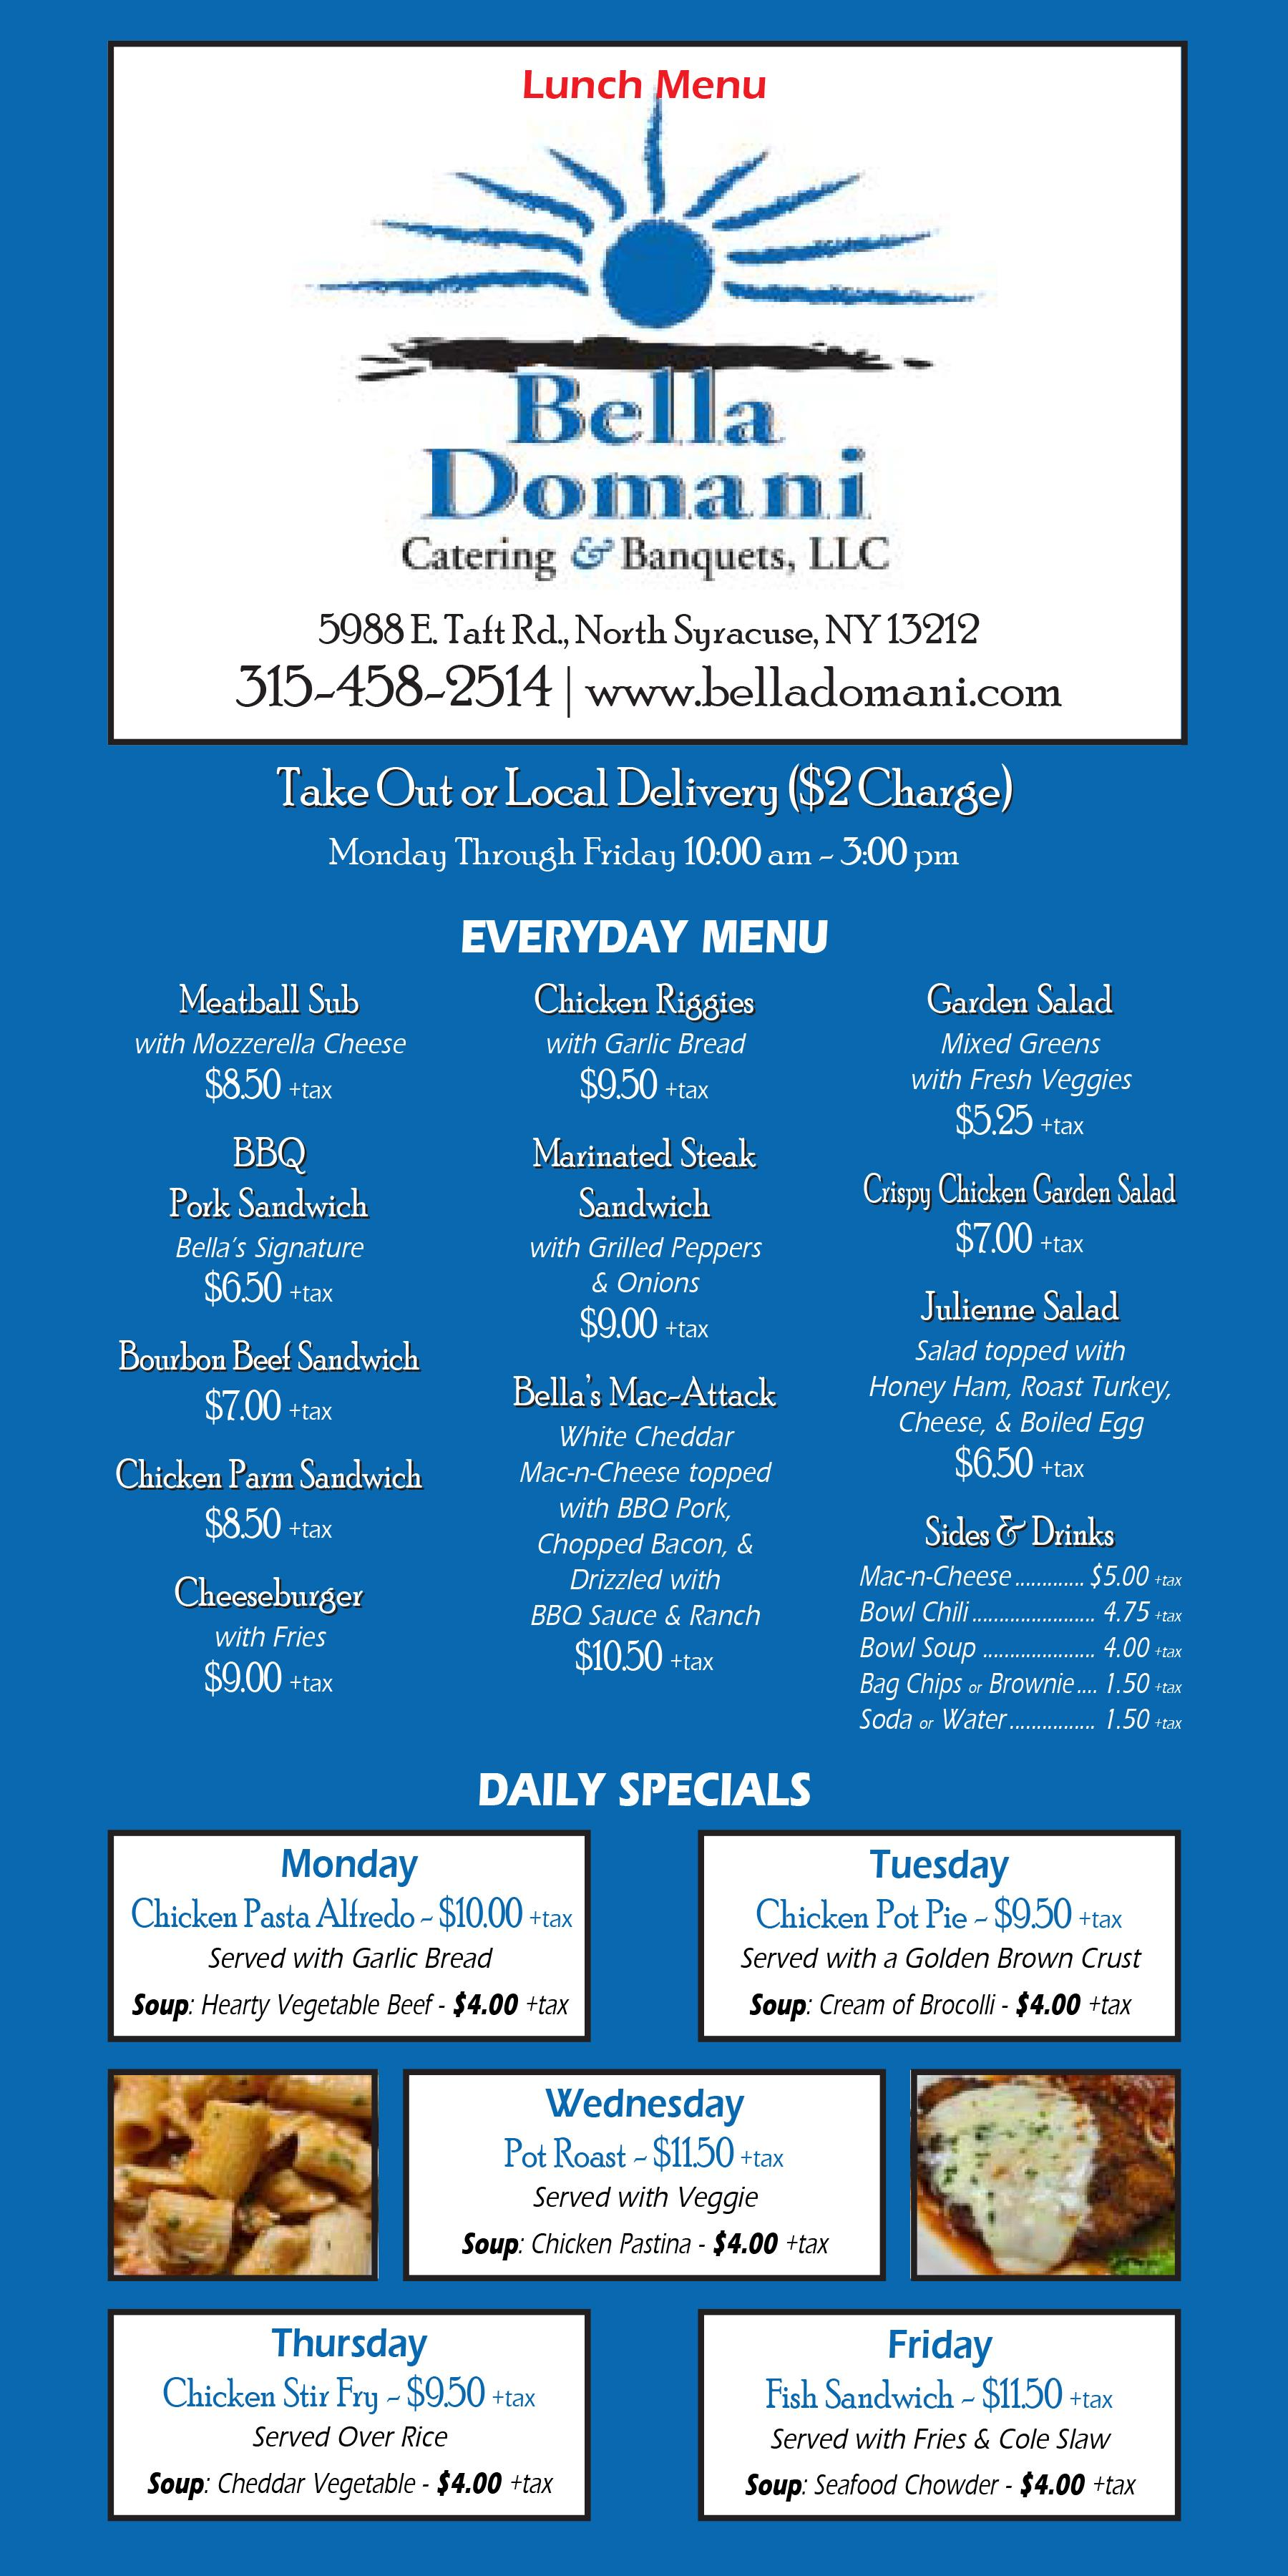 Every Day menu. Monday through Friday 10 am to 3 pm. Daily specials.